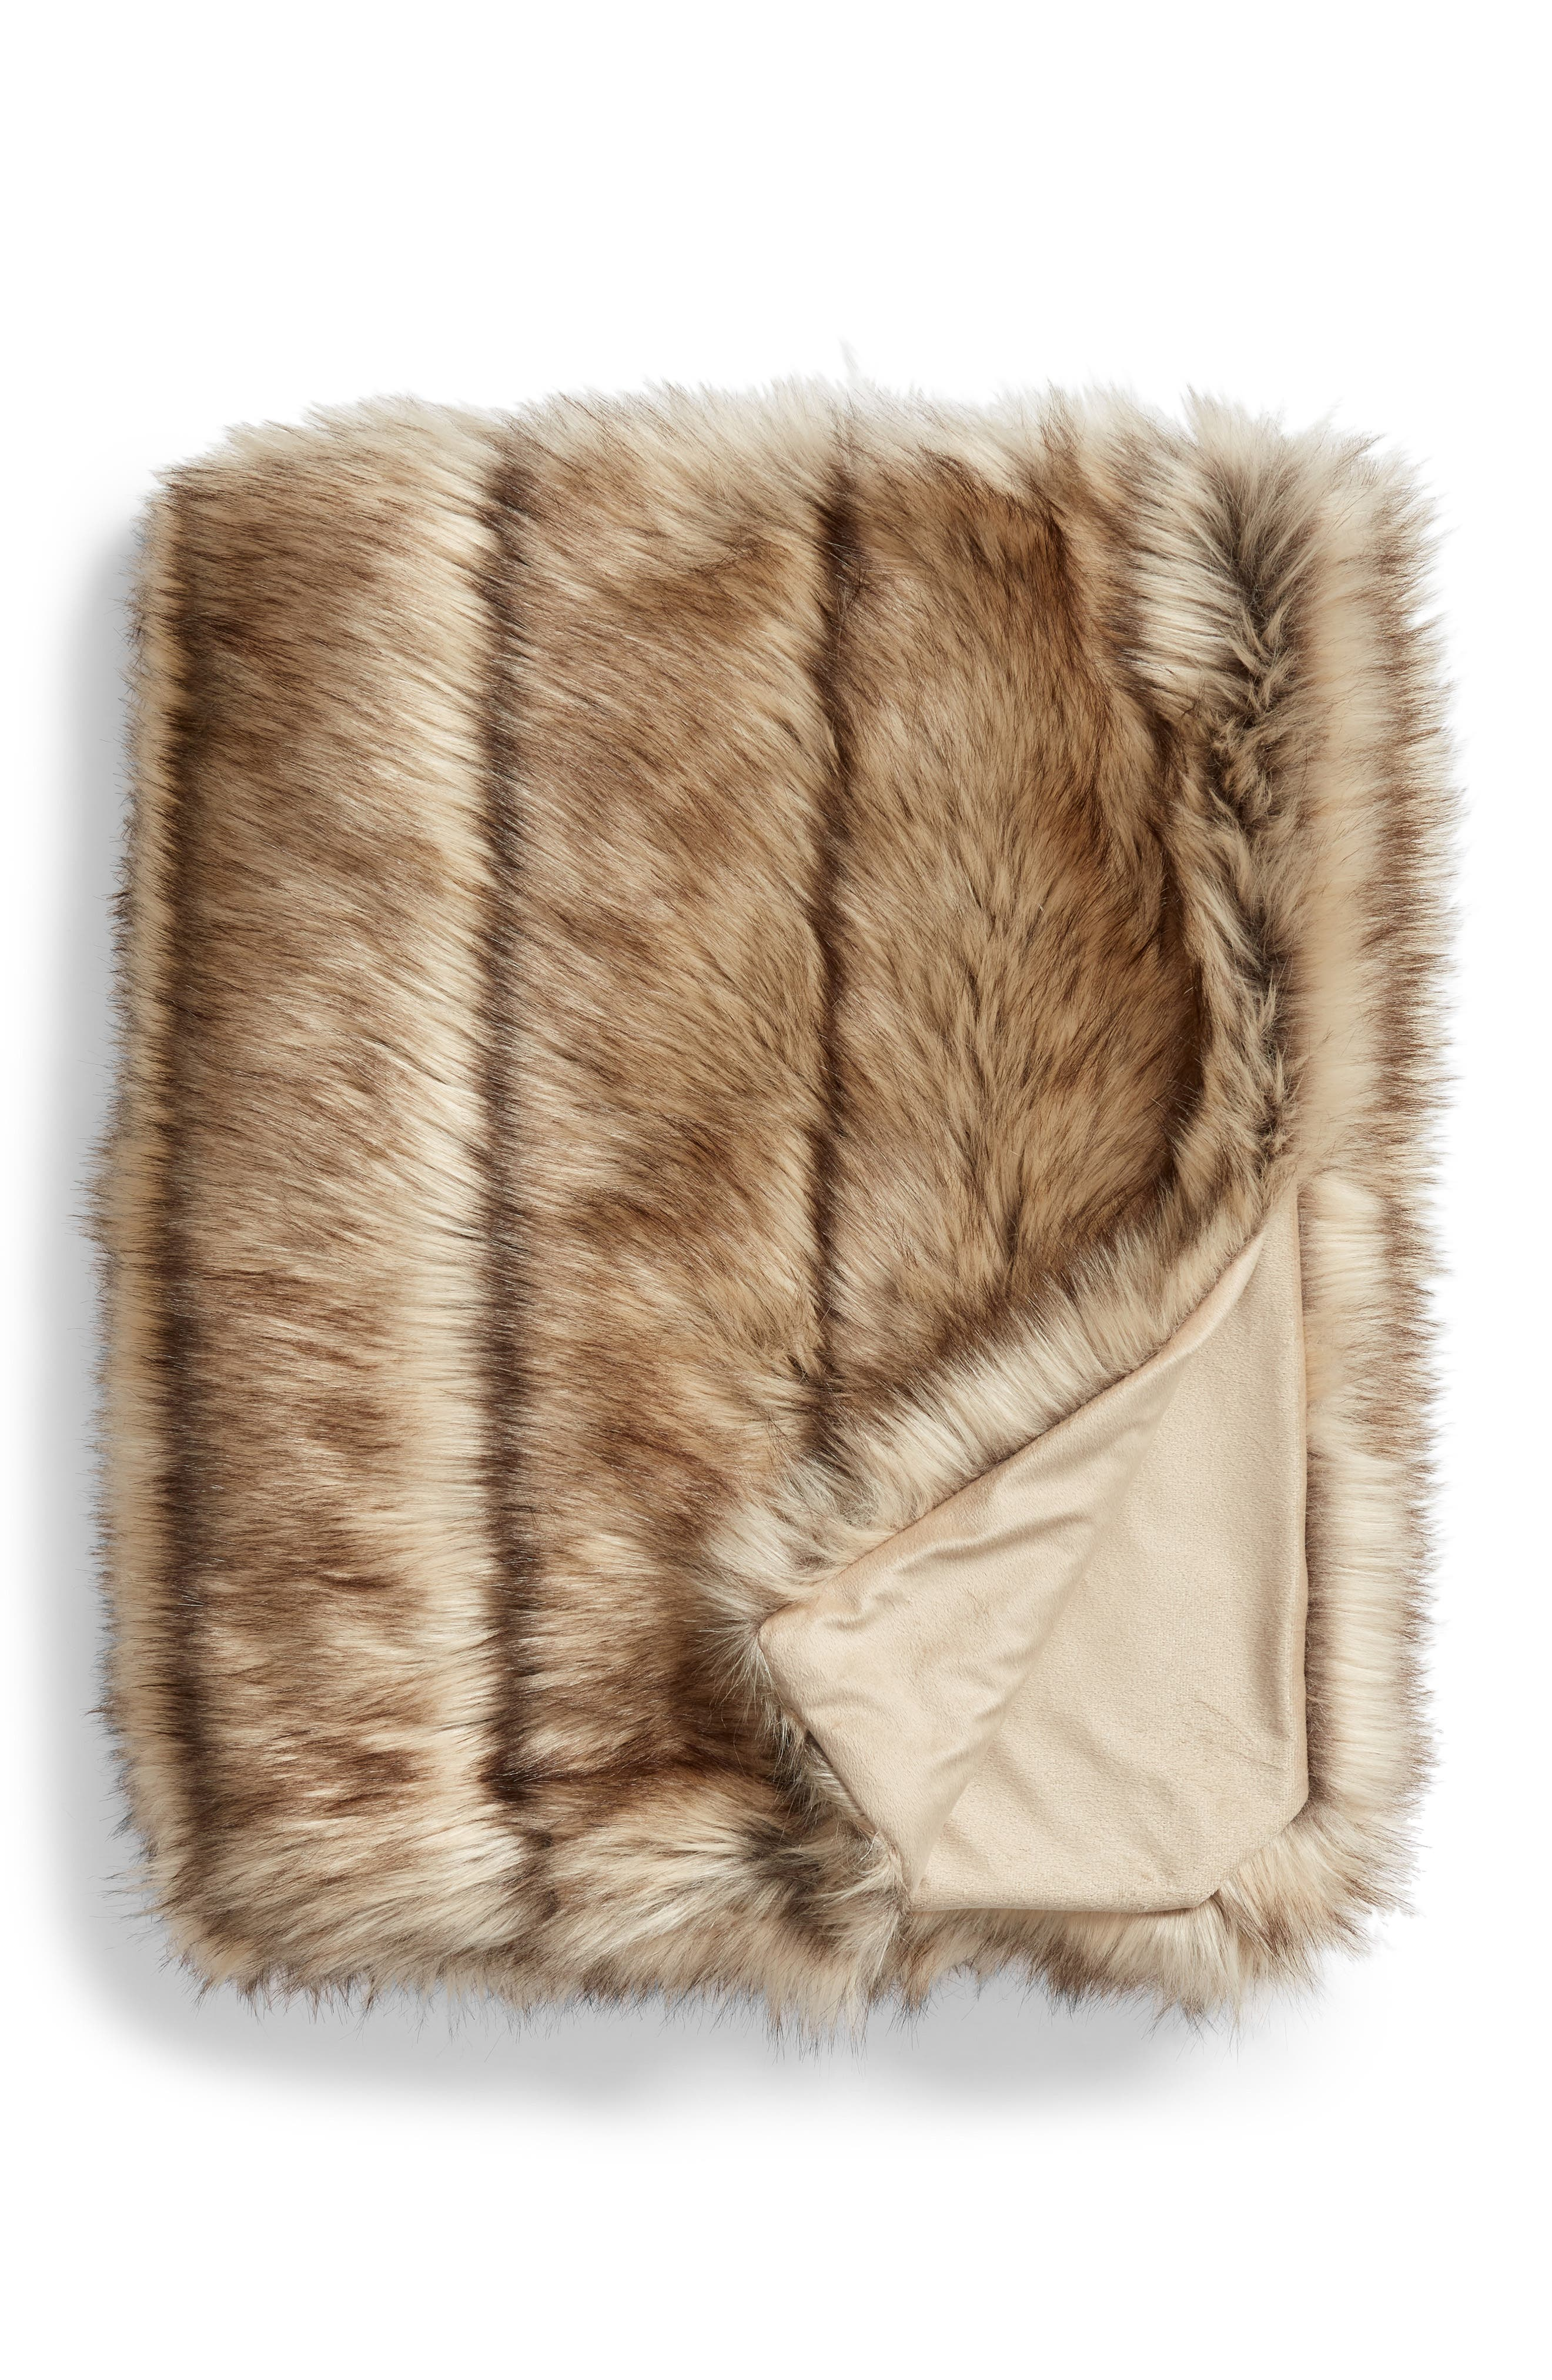 NORDSTROM AT HOME, Luxe Faux Fur Stripe Throw Blanket, Main thumbnail 1, color, NATURAL MULTI